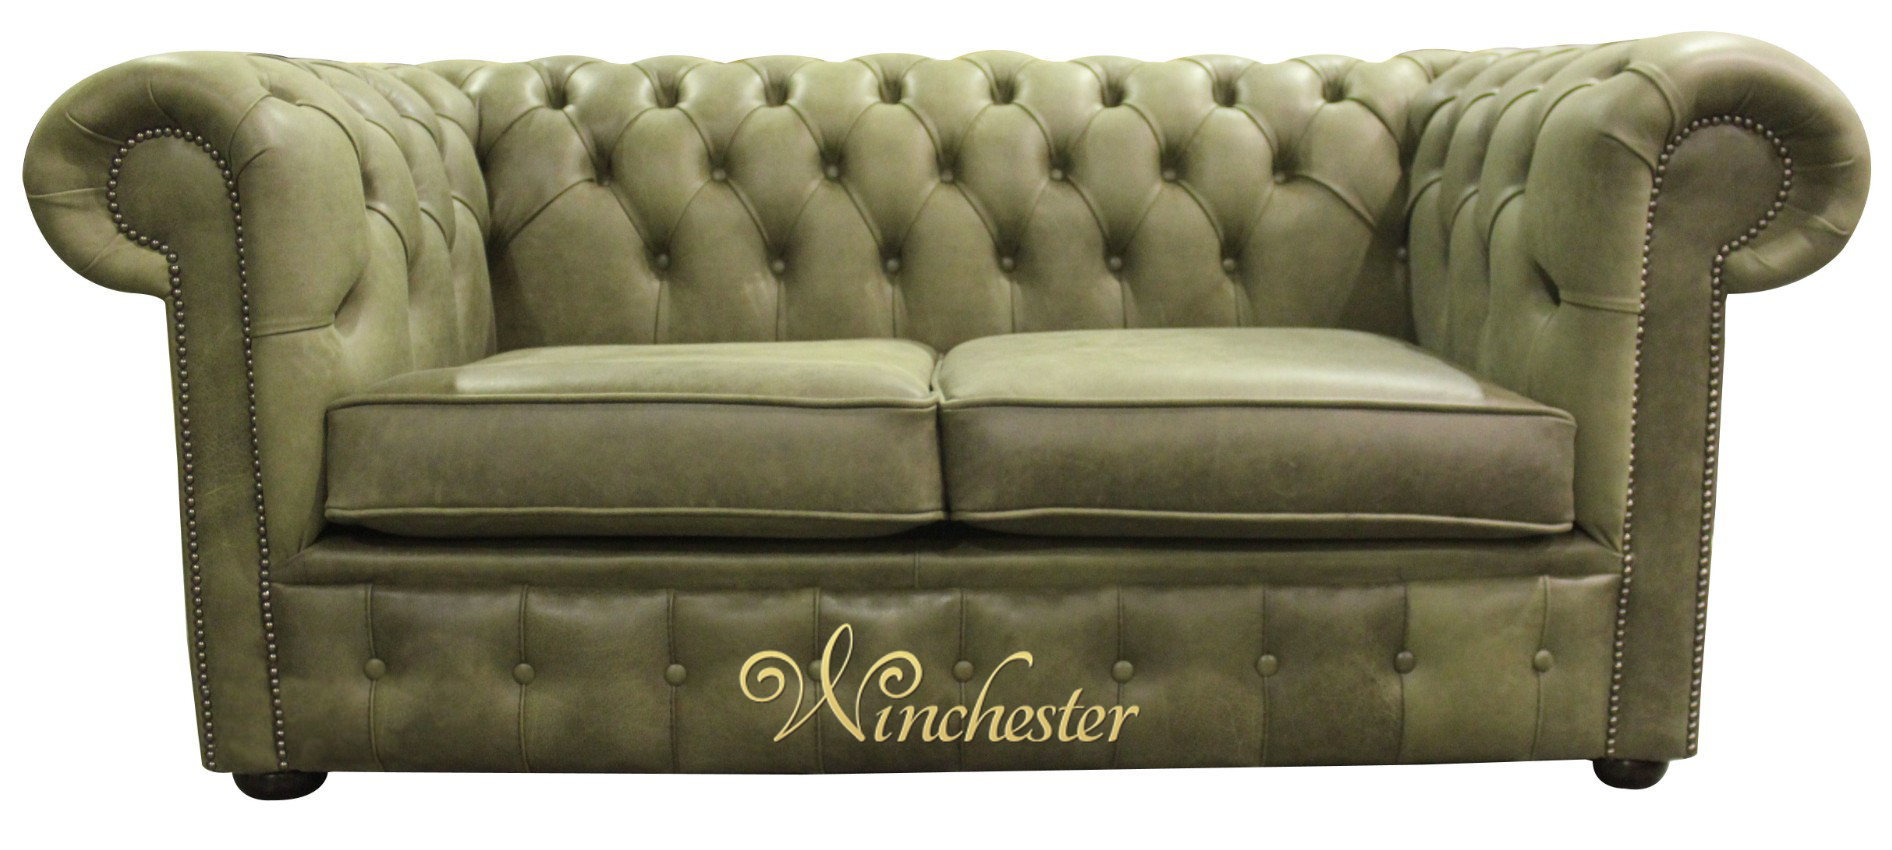 sage leather sofa seat cushions online chesterfield 2 seater settee selvaggio green